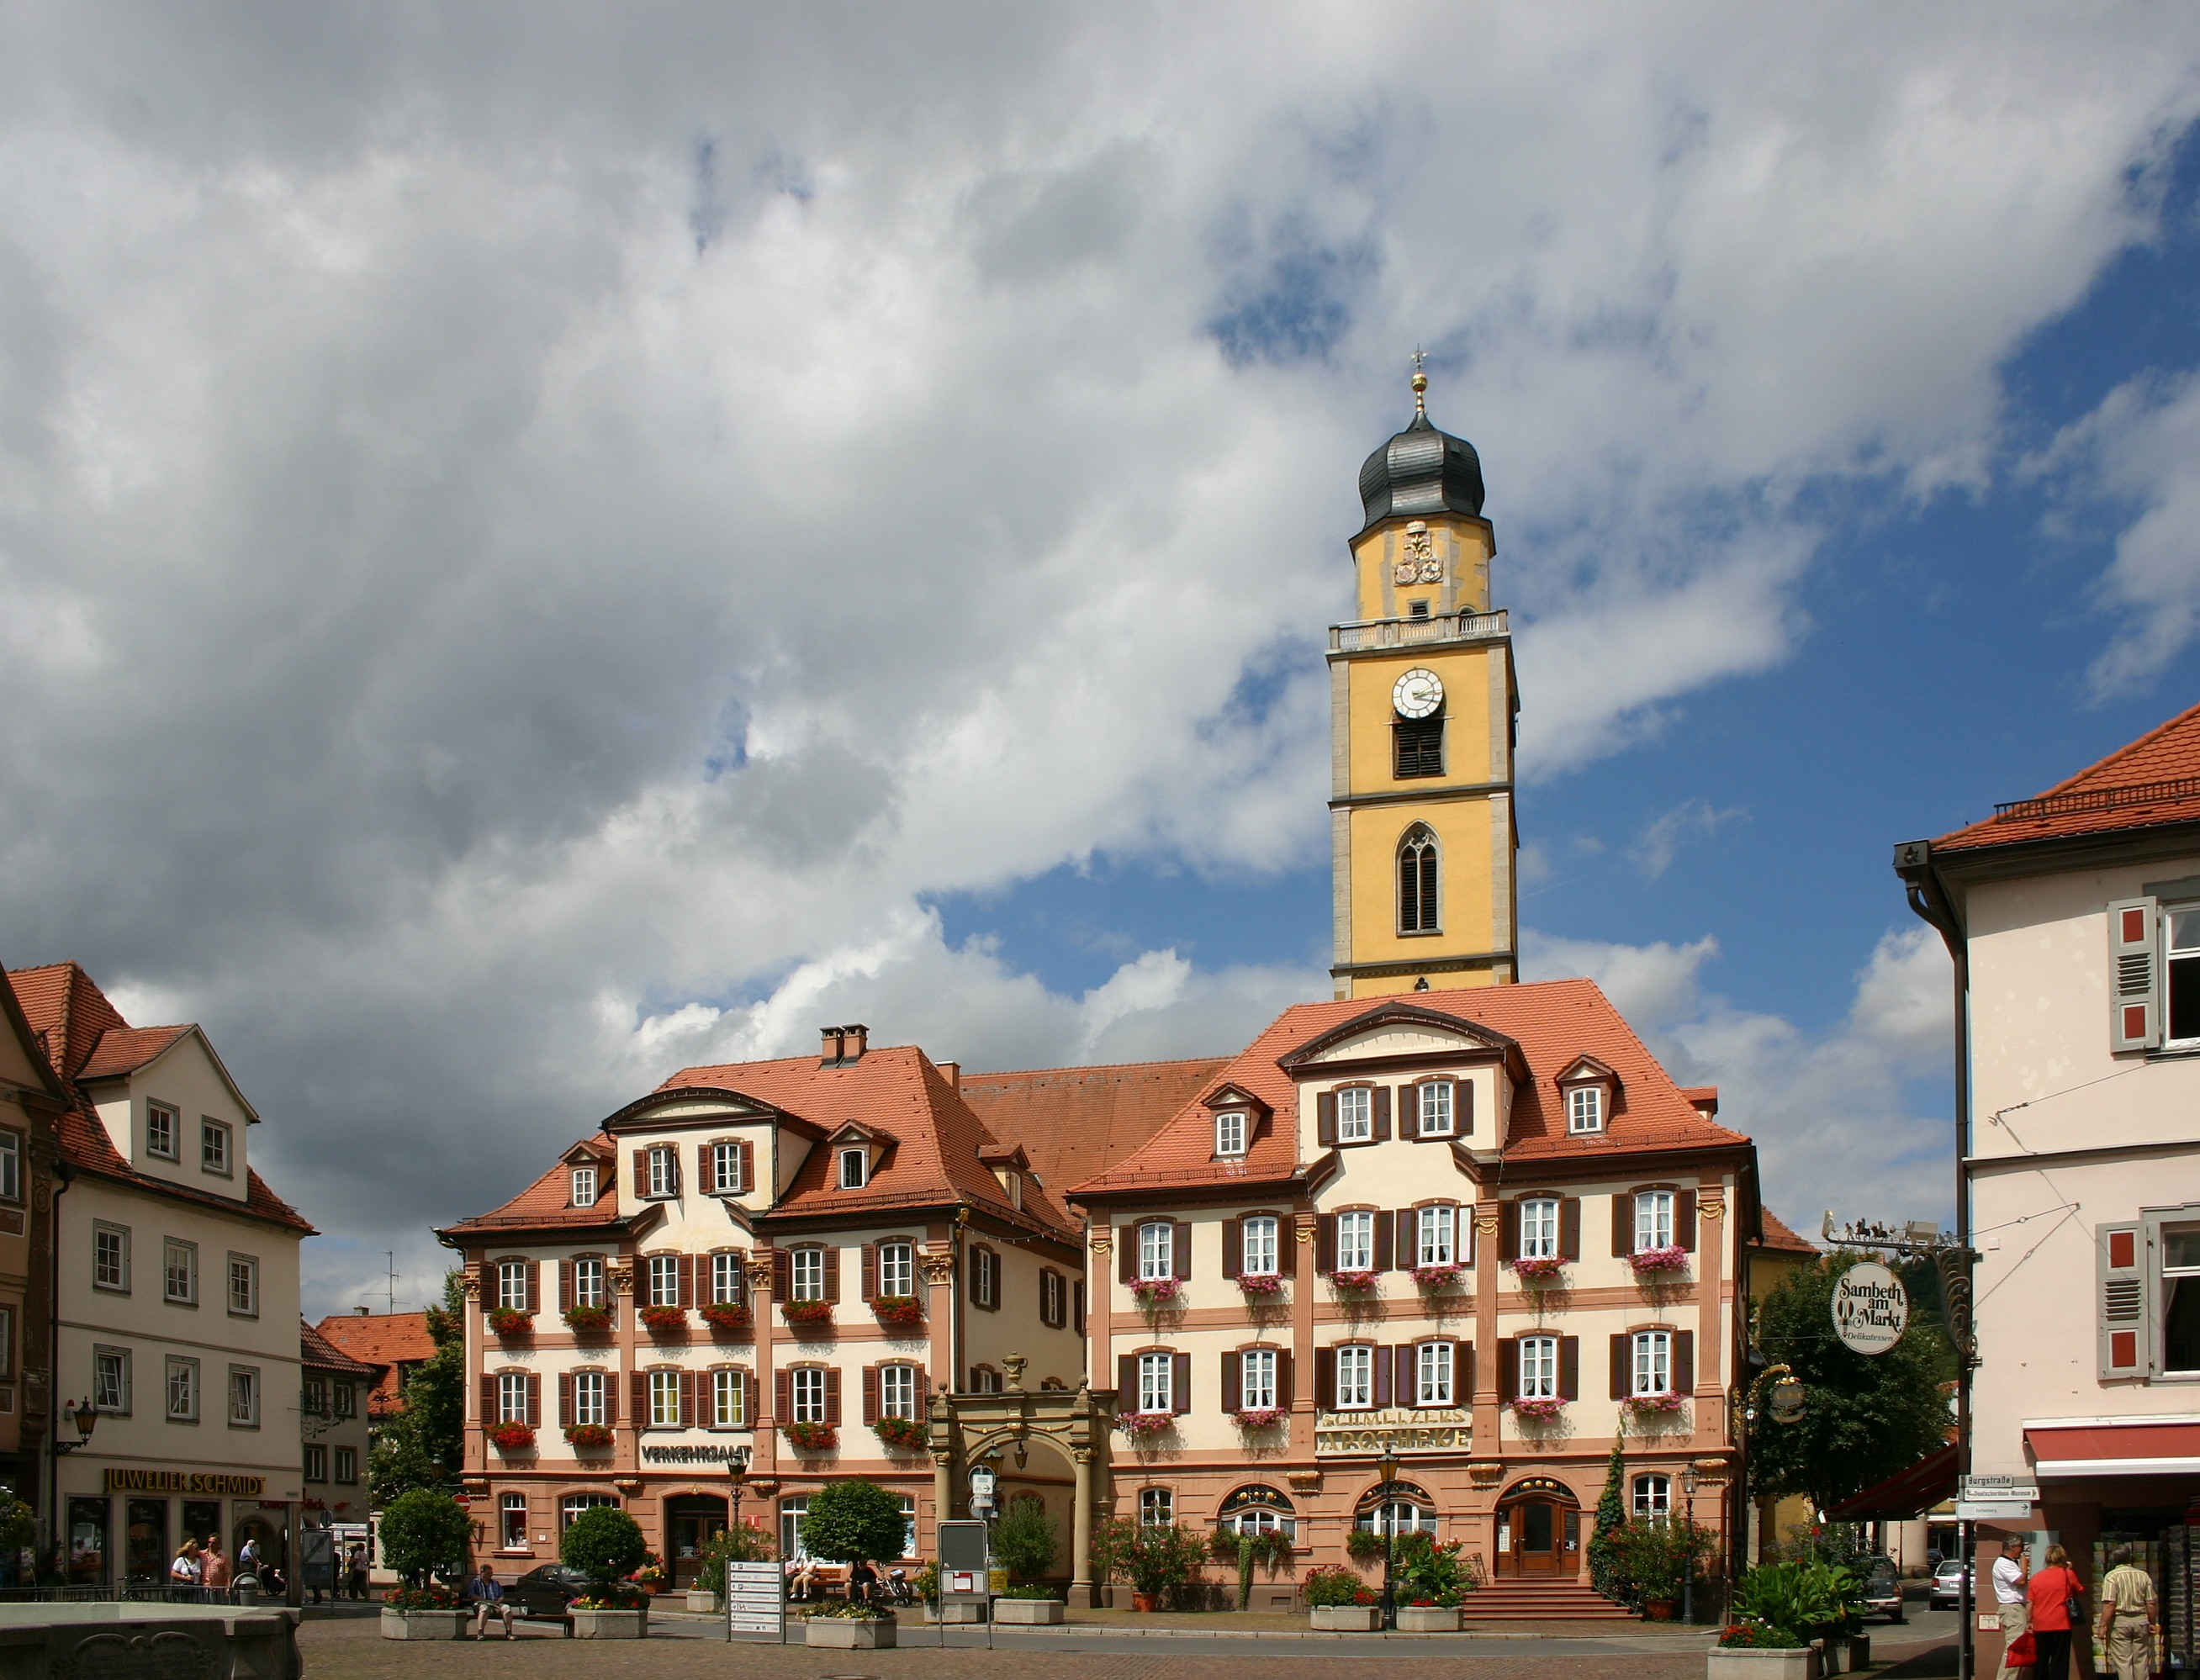 remarkable, and alternative? Partnersuche osterode harz suggest you